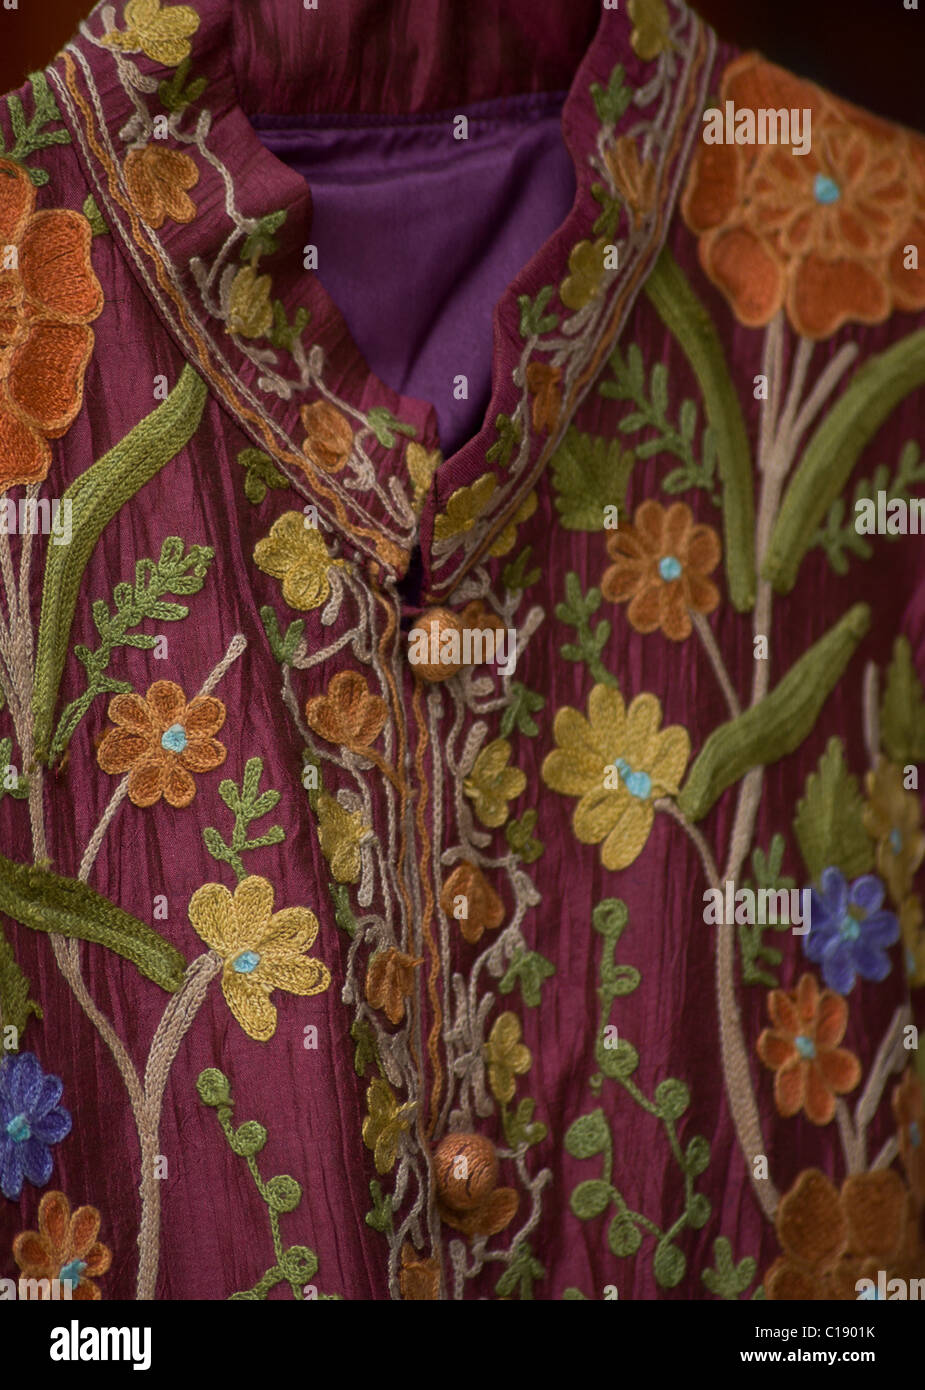 Detail of Kashmiri embroidery on traditional clothing - Stock Image